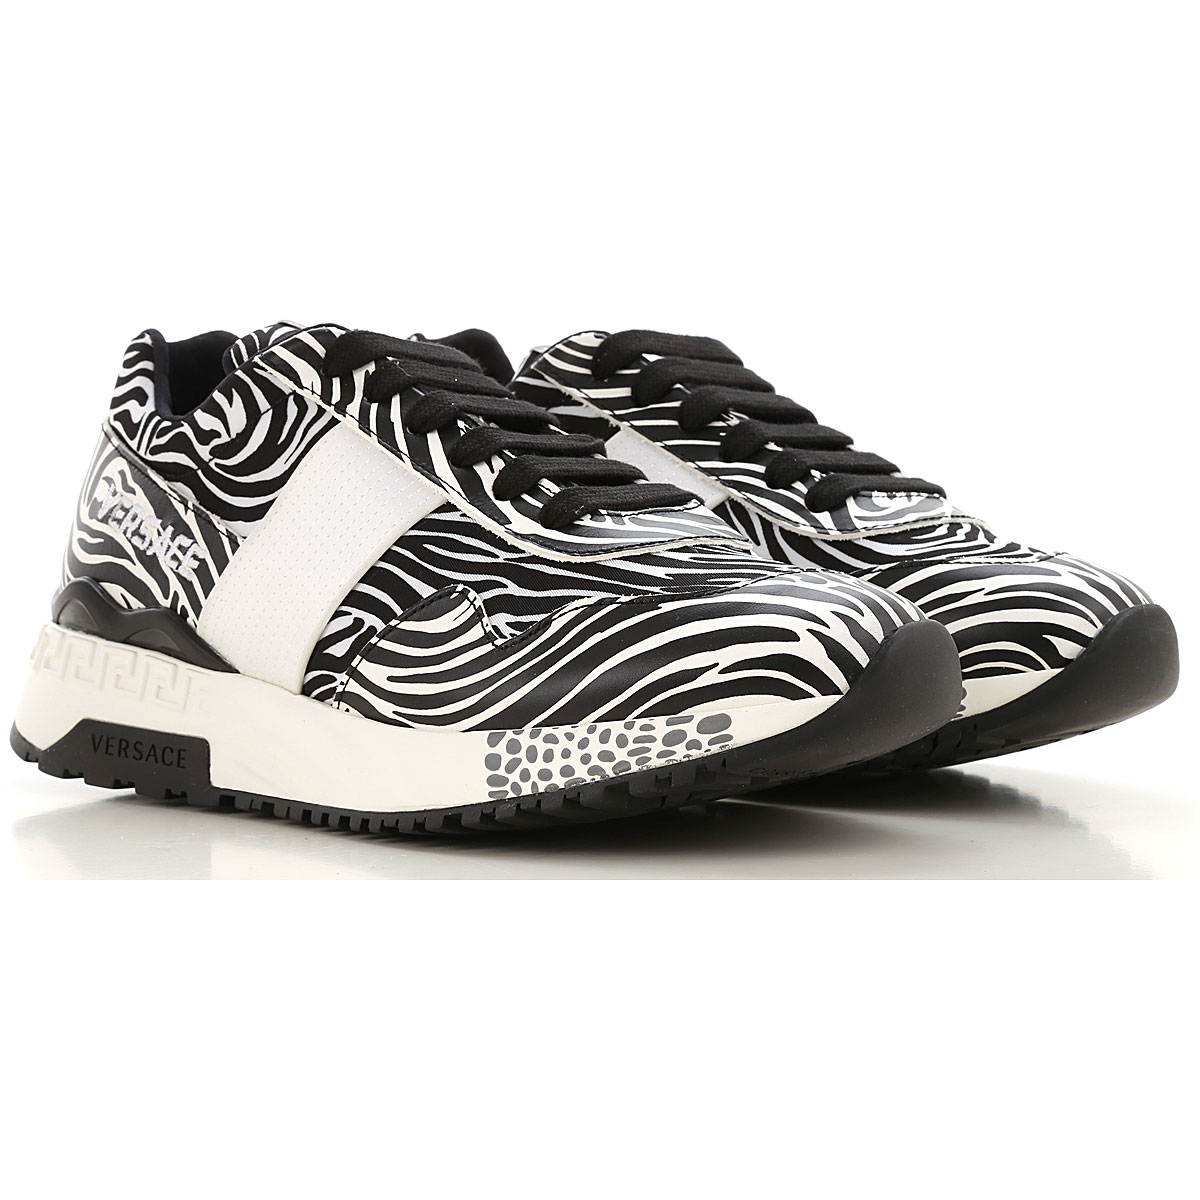 Gianni Versace Sneakers for Women On Sale, Zebra-Striped, Leather, 2019, 5 6 7 8 9